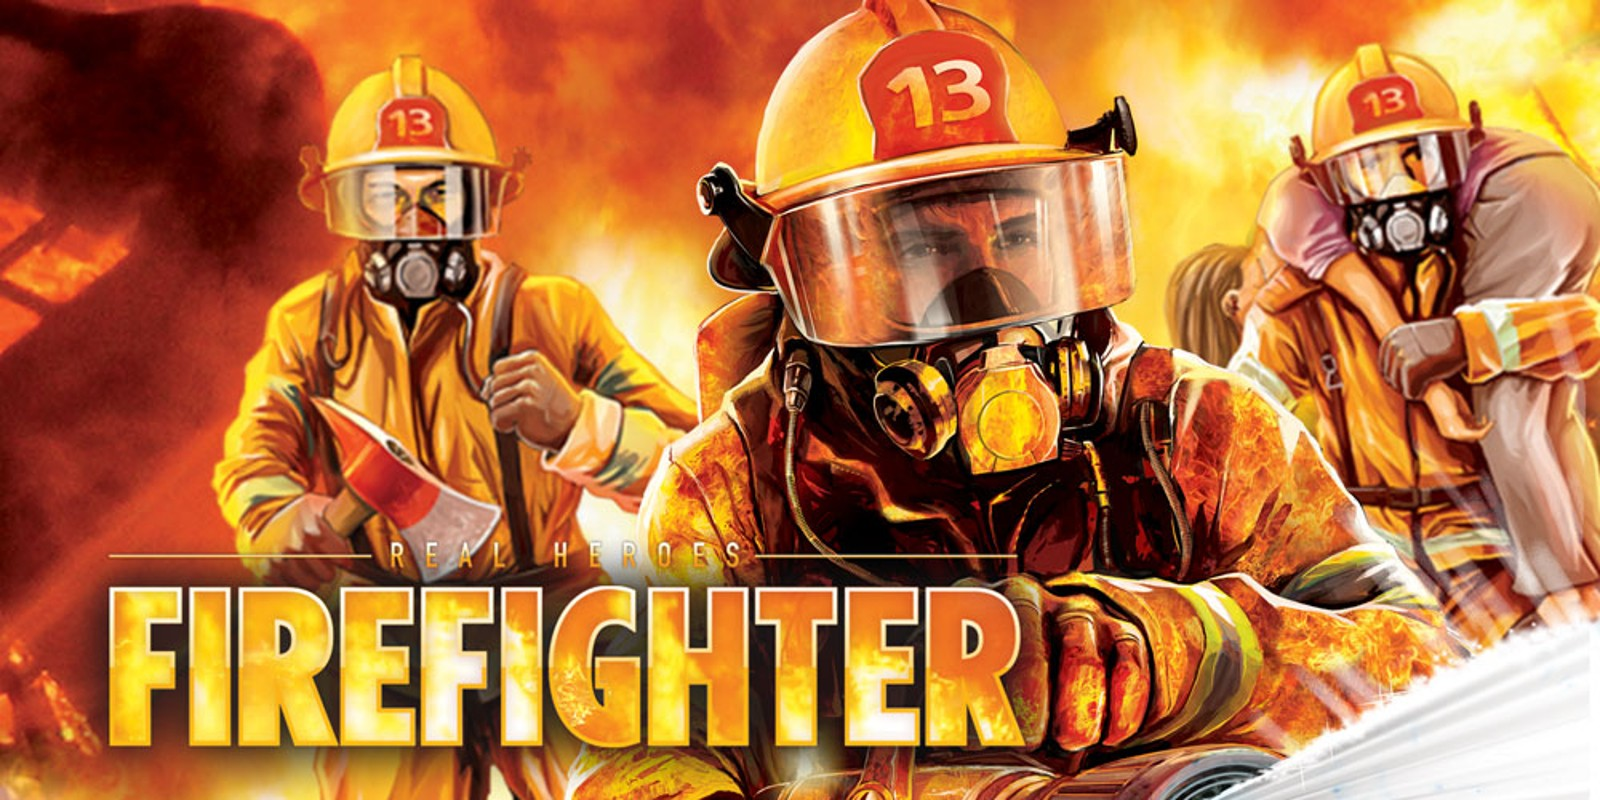 SI_Wii_RealHeroesFirefighter_image1600w